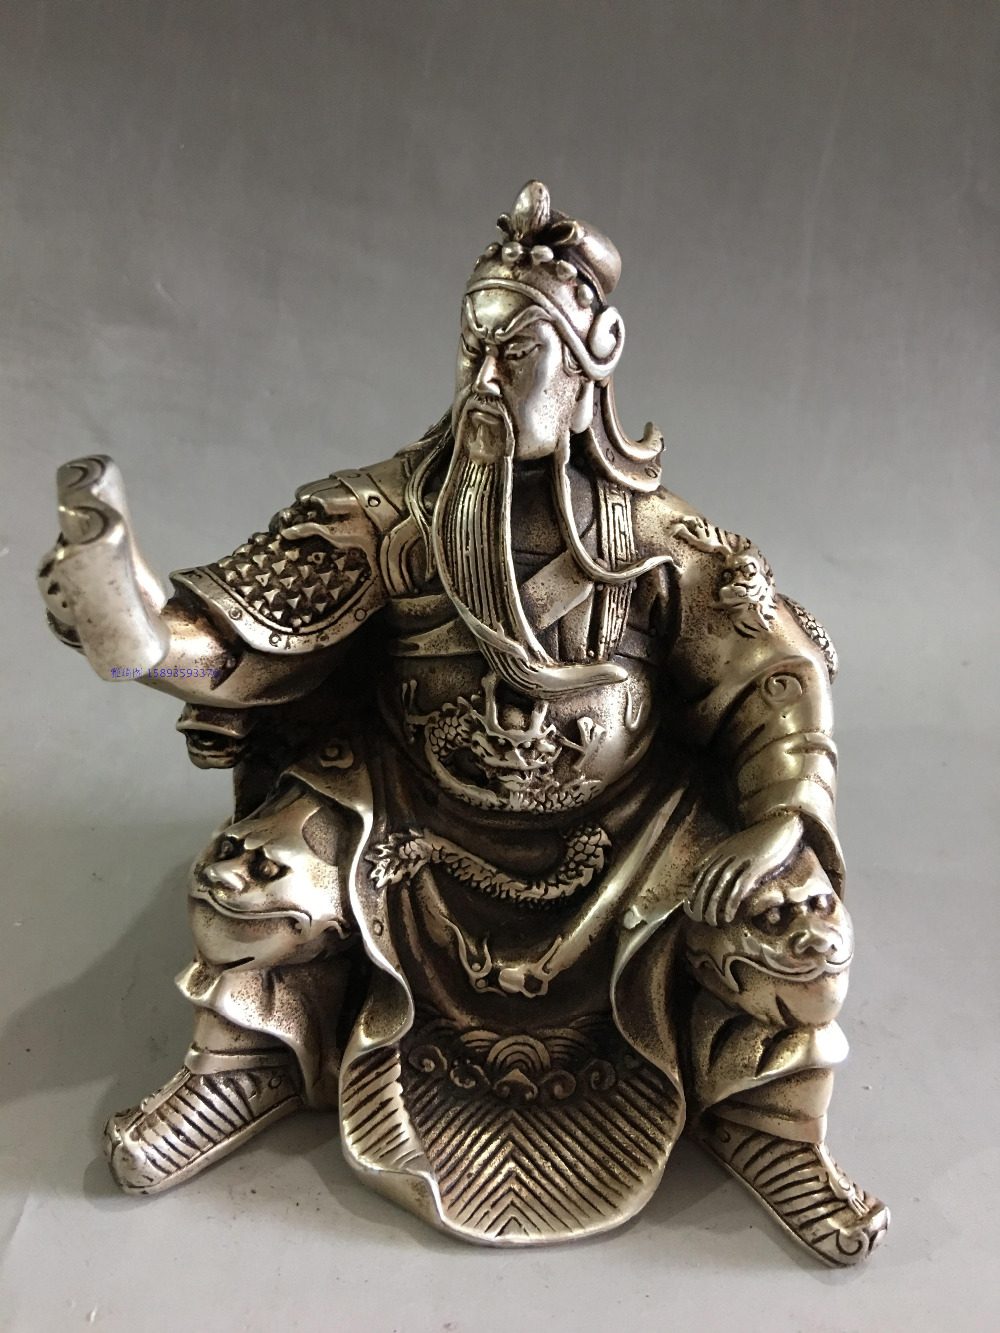 OLD COLLECTIBLE DECORATION TIBETAN SILVER CARVING GUAN GONG STATUE PENDANT